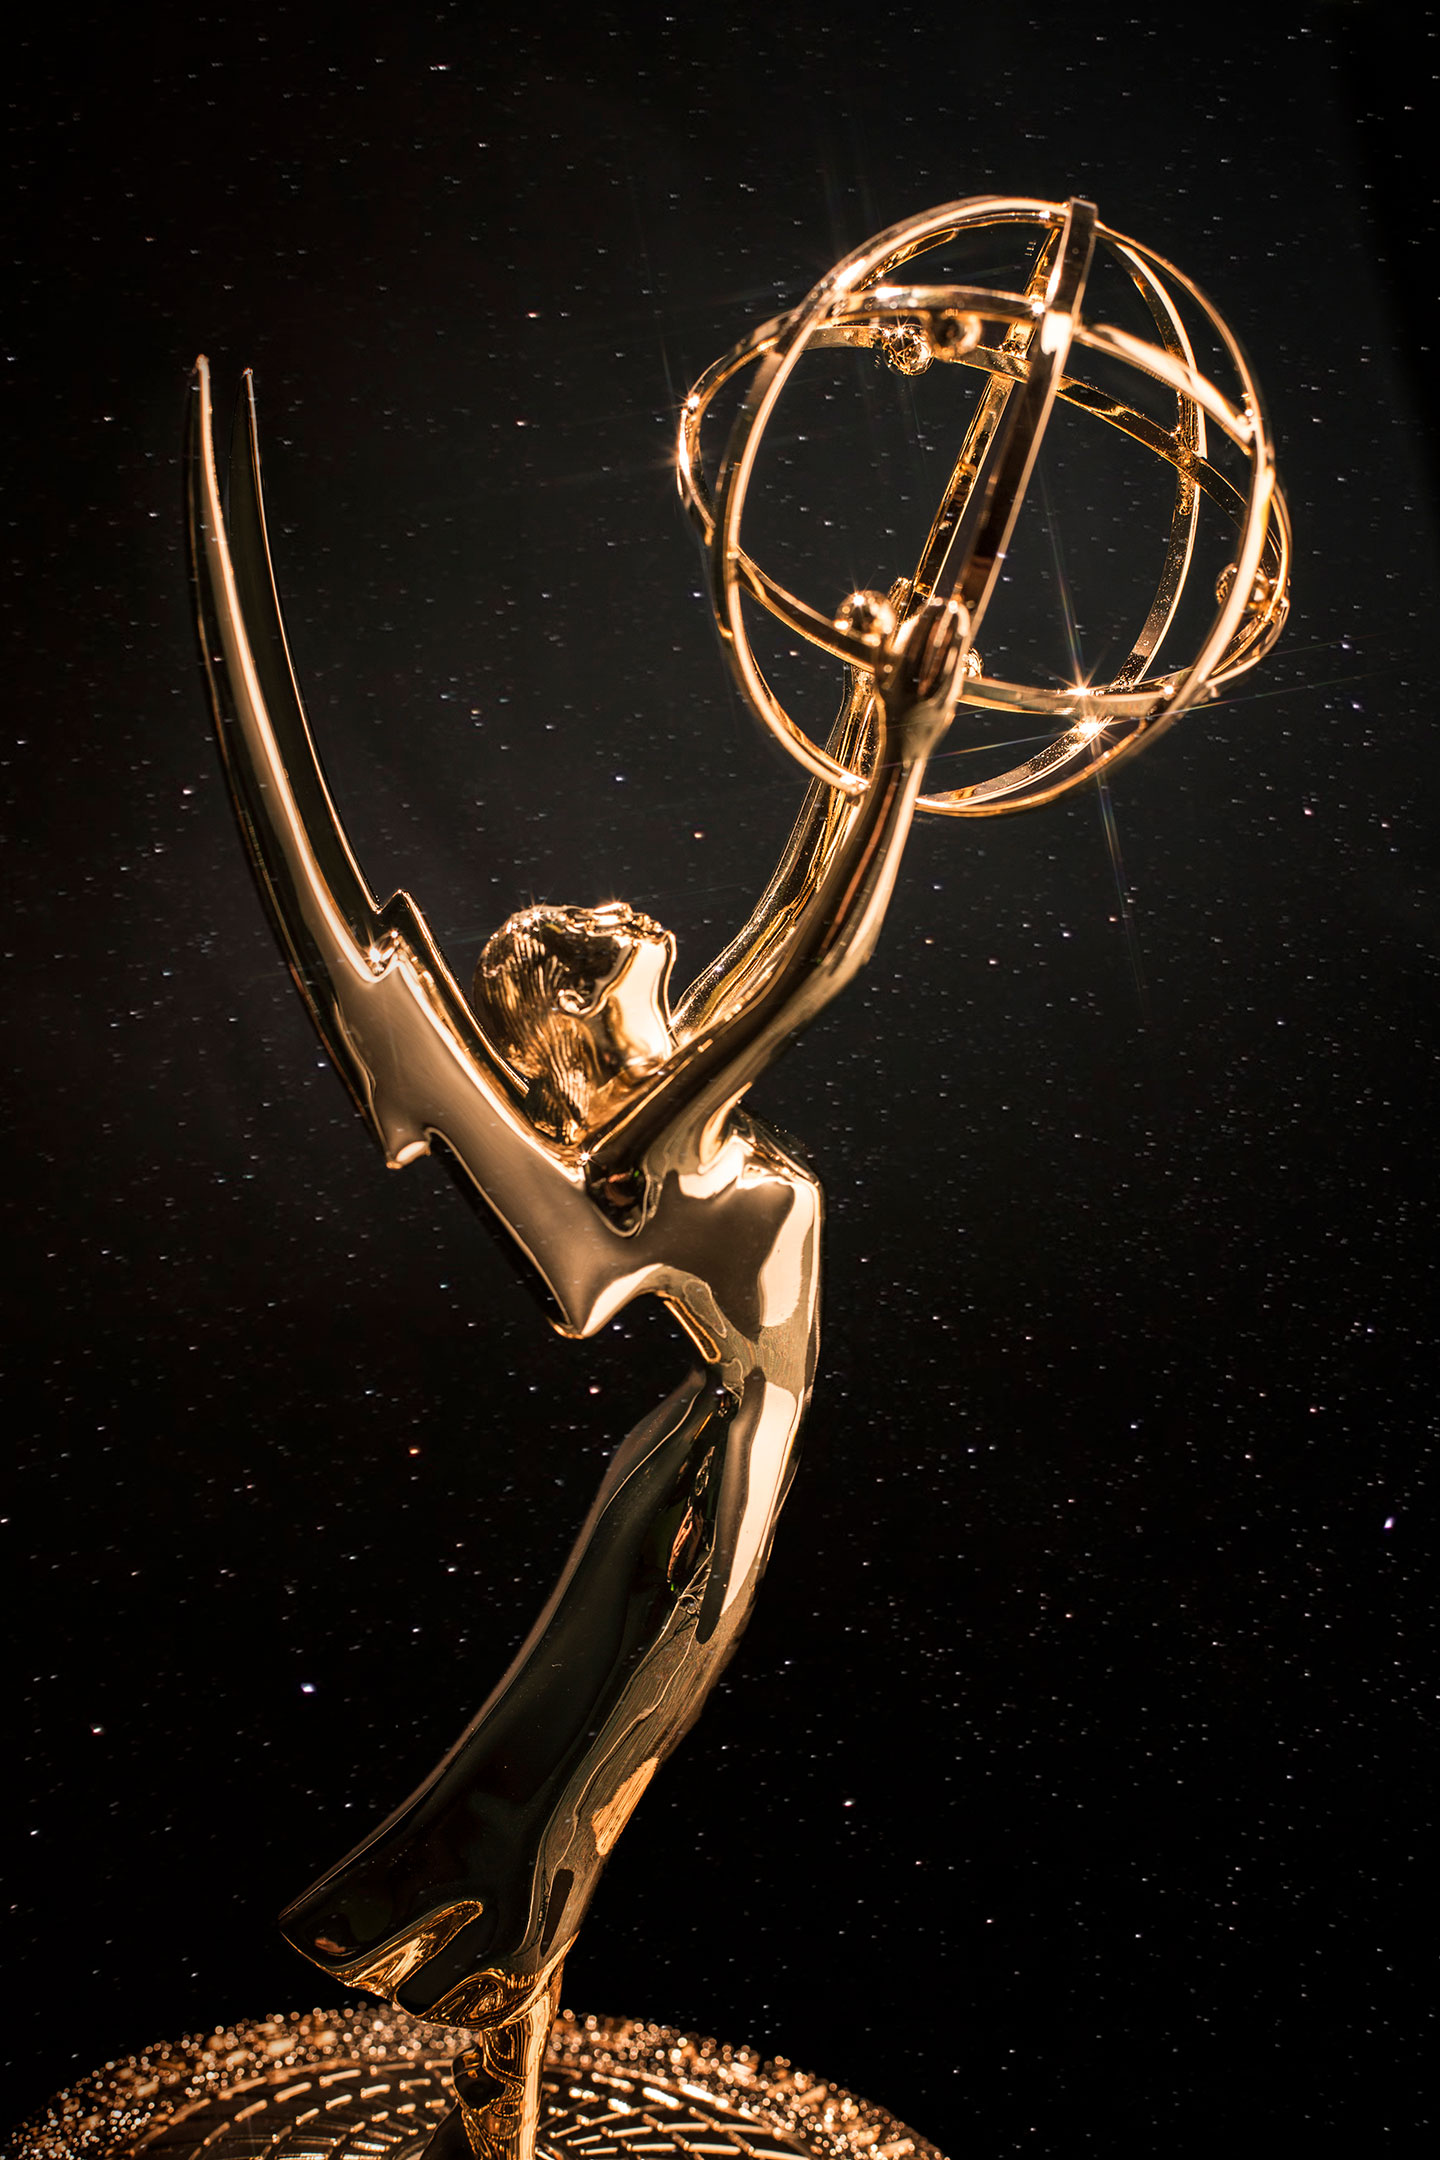 A gold, Emmy award trophy.